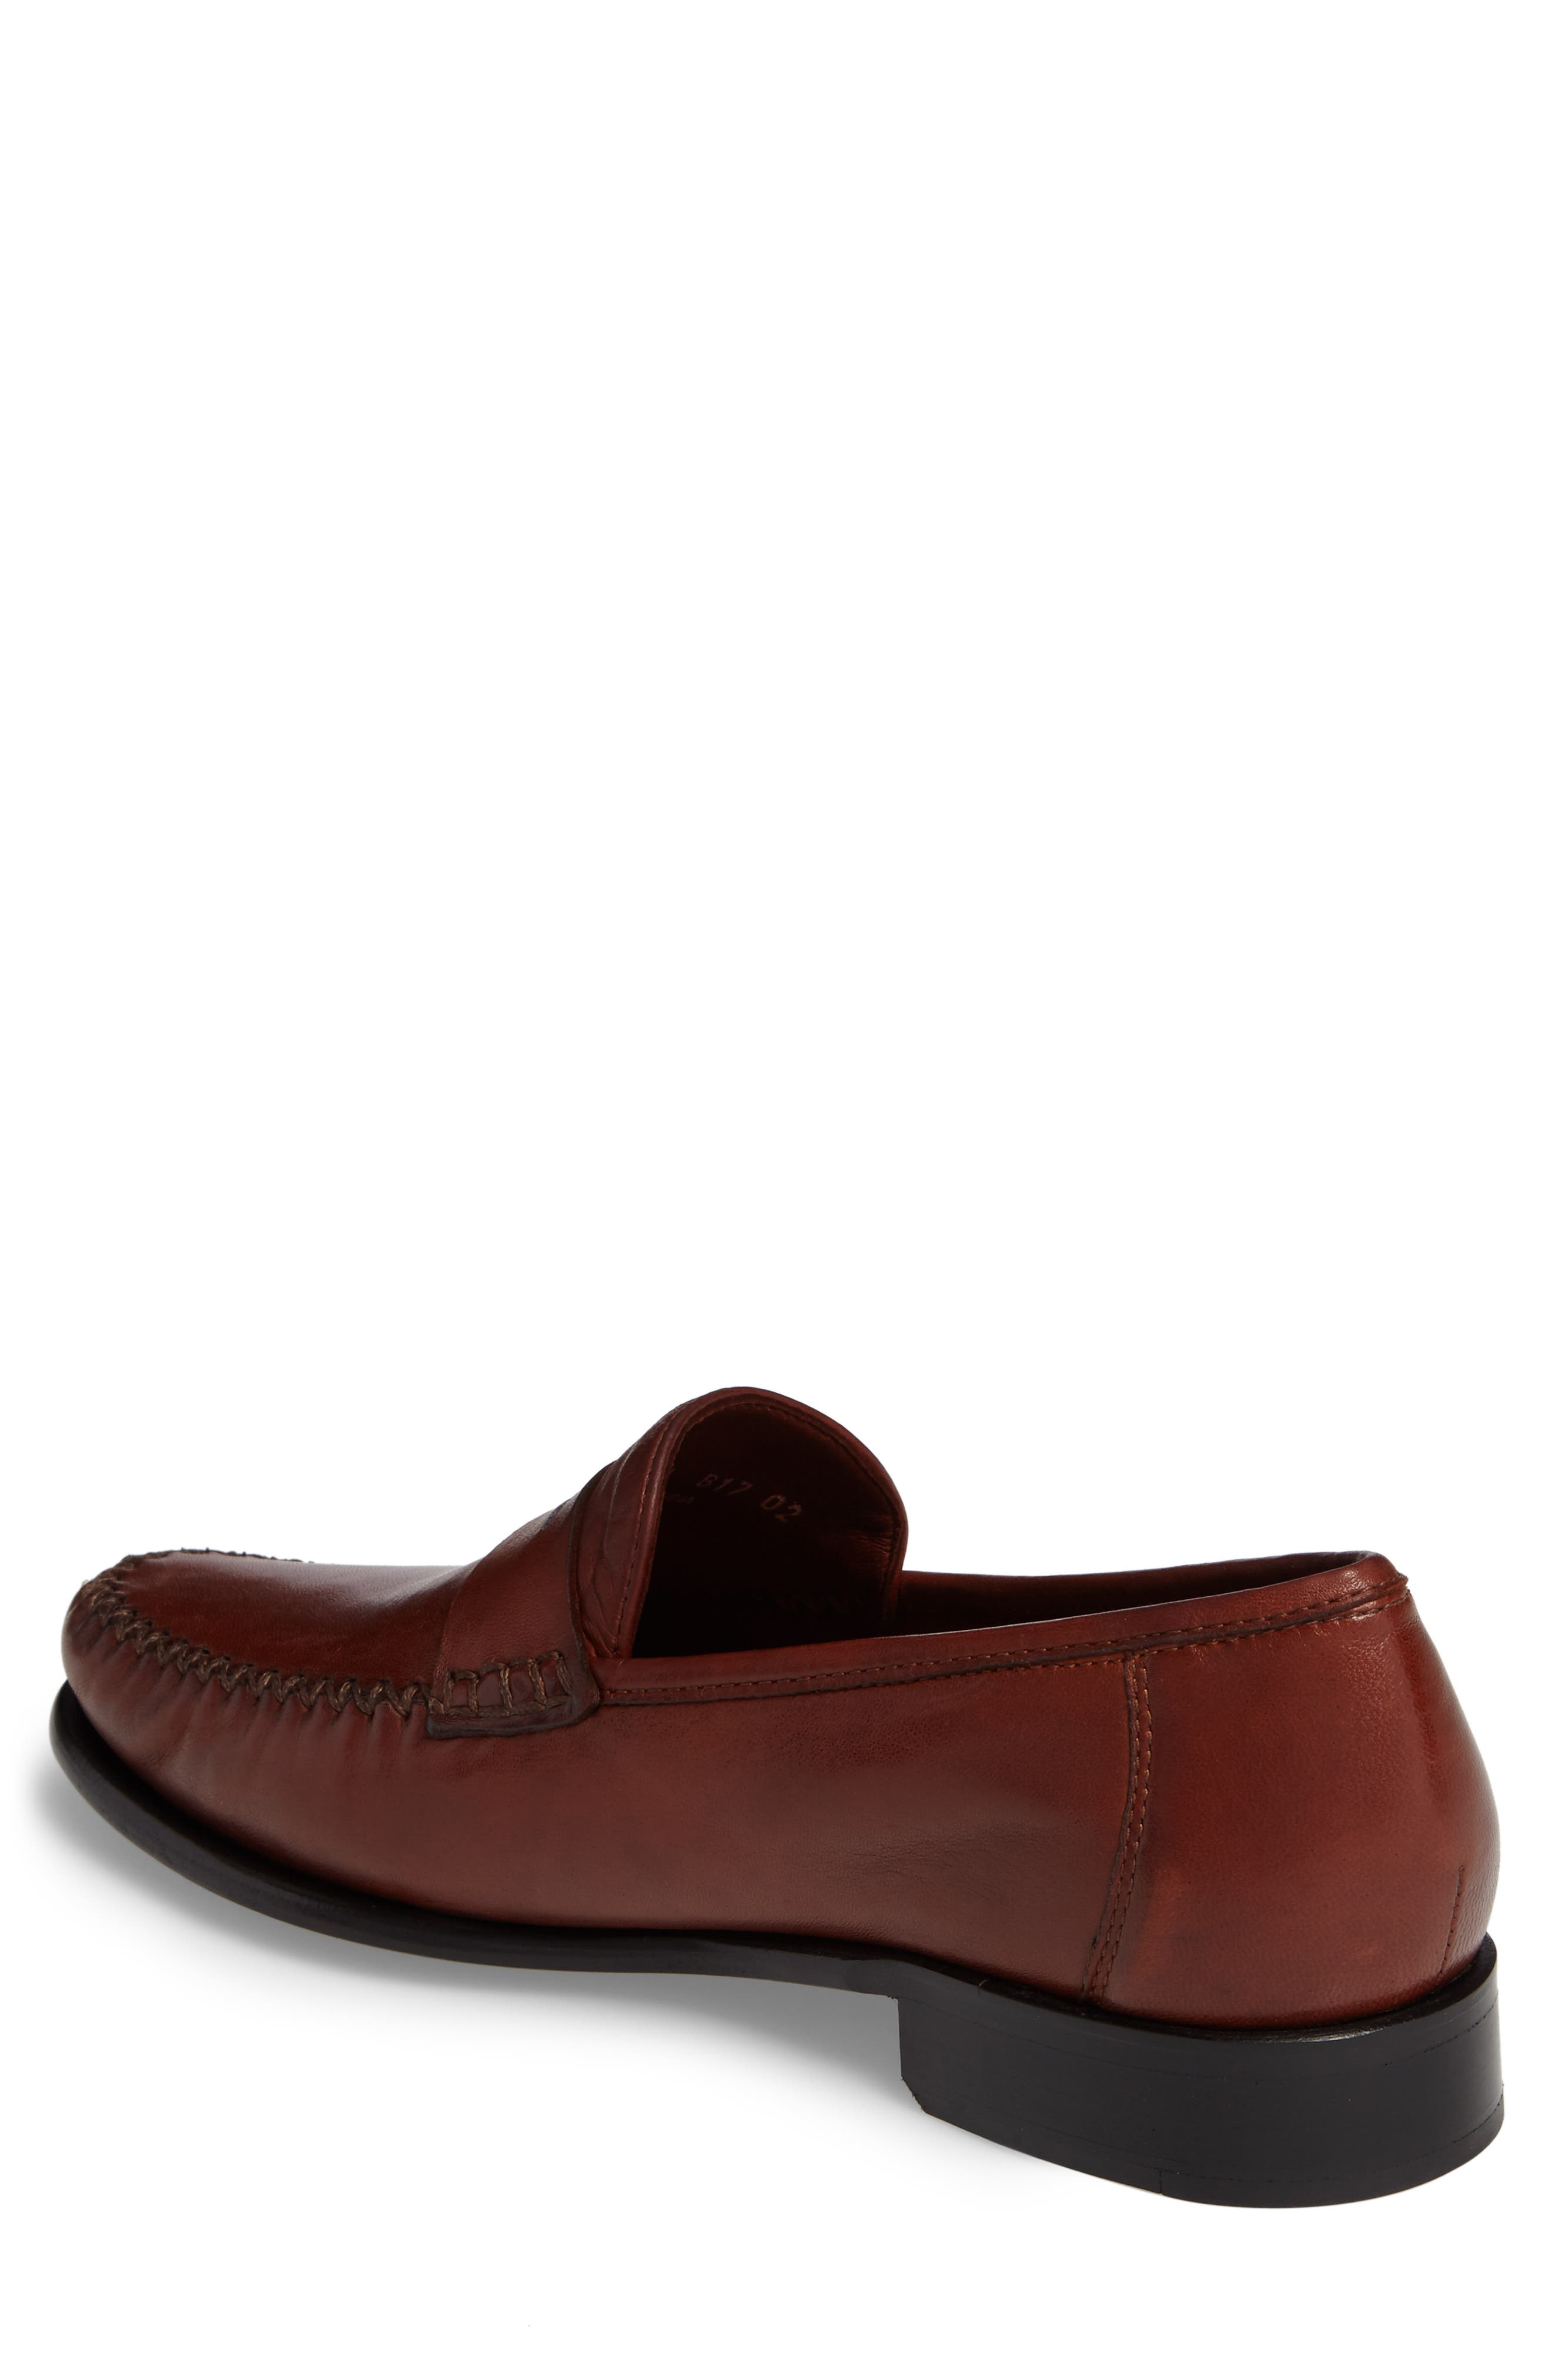 Penny Loafer,                             Alternate thumbnail 2, color,                             DARK LUGGAGE LEATHER